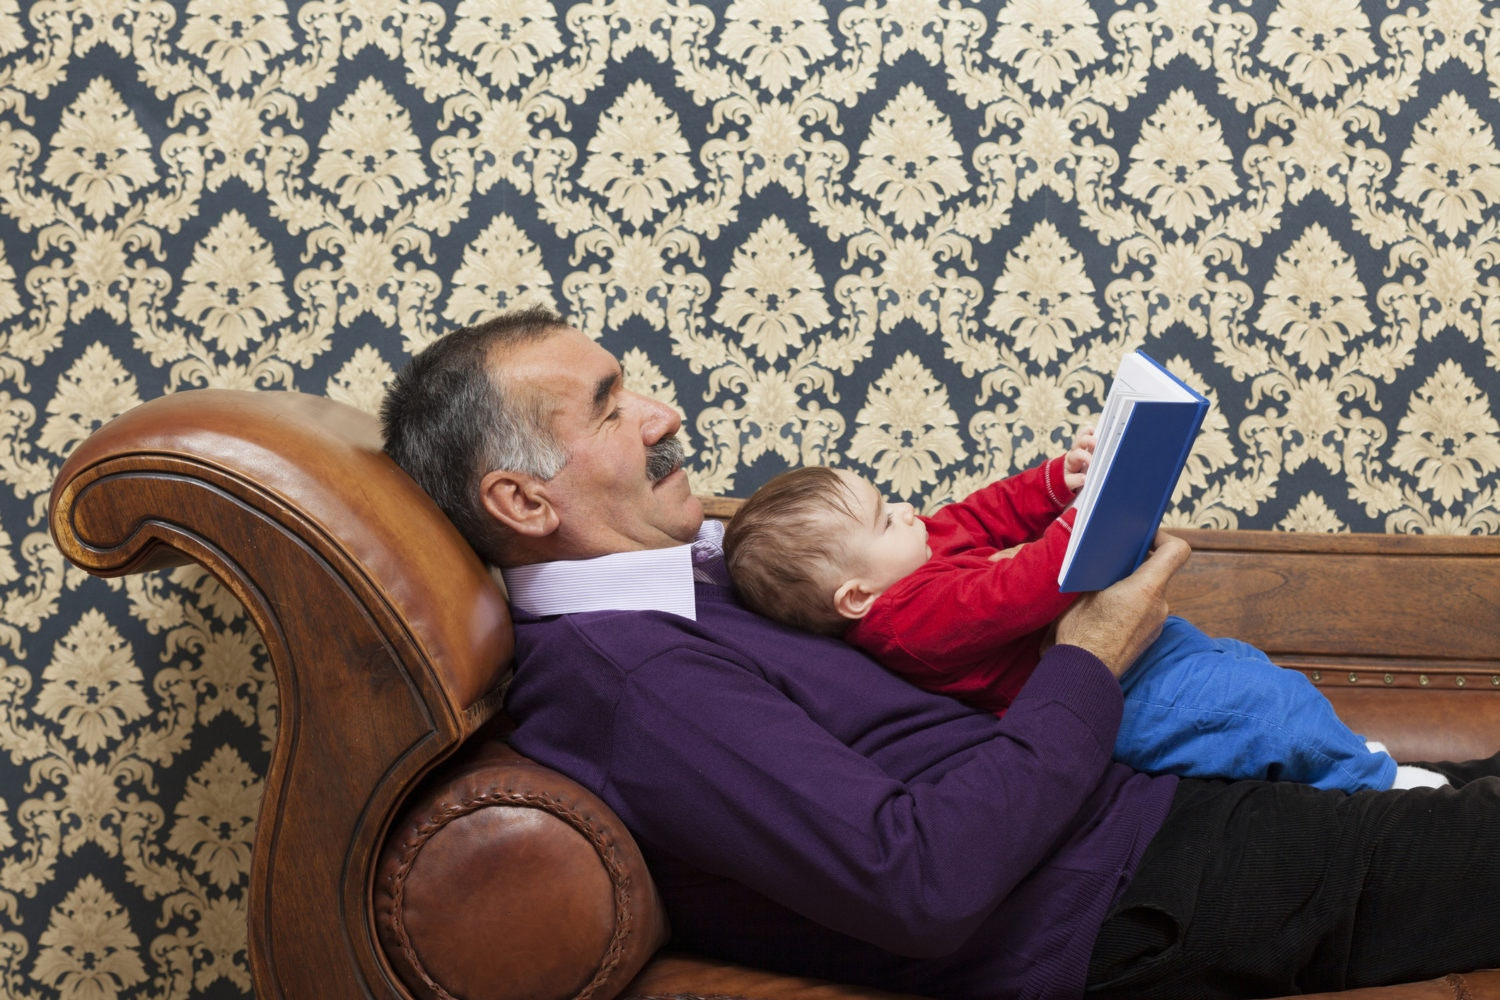 grandfather reading book for newborn grandson on  a sofa